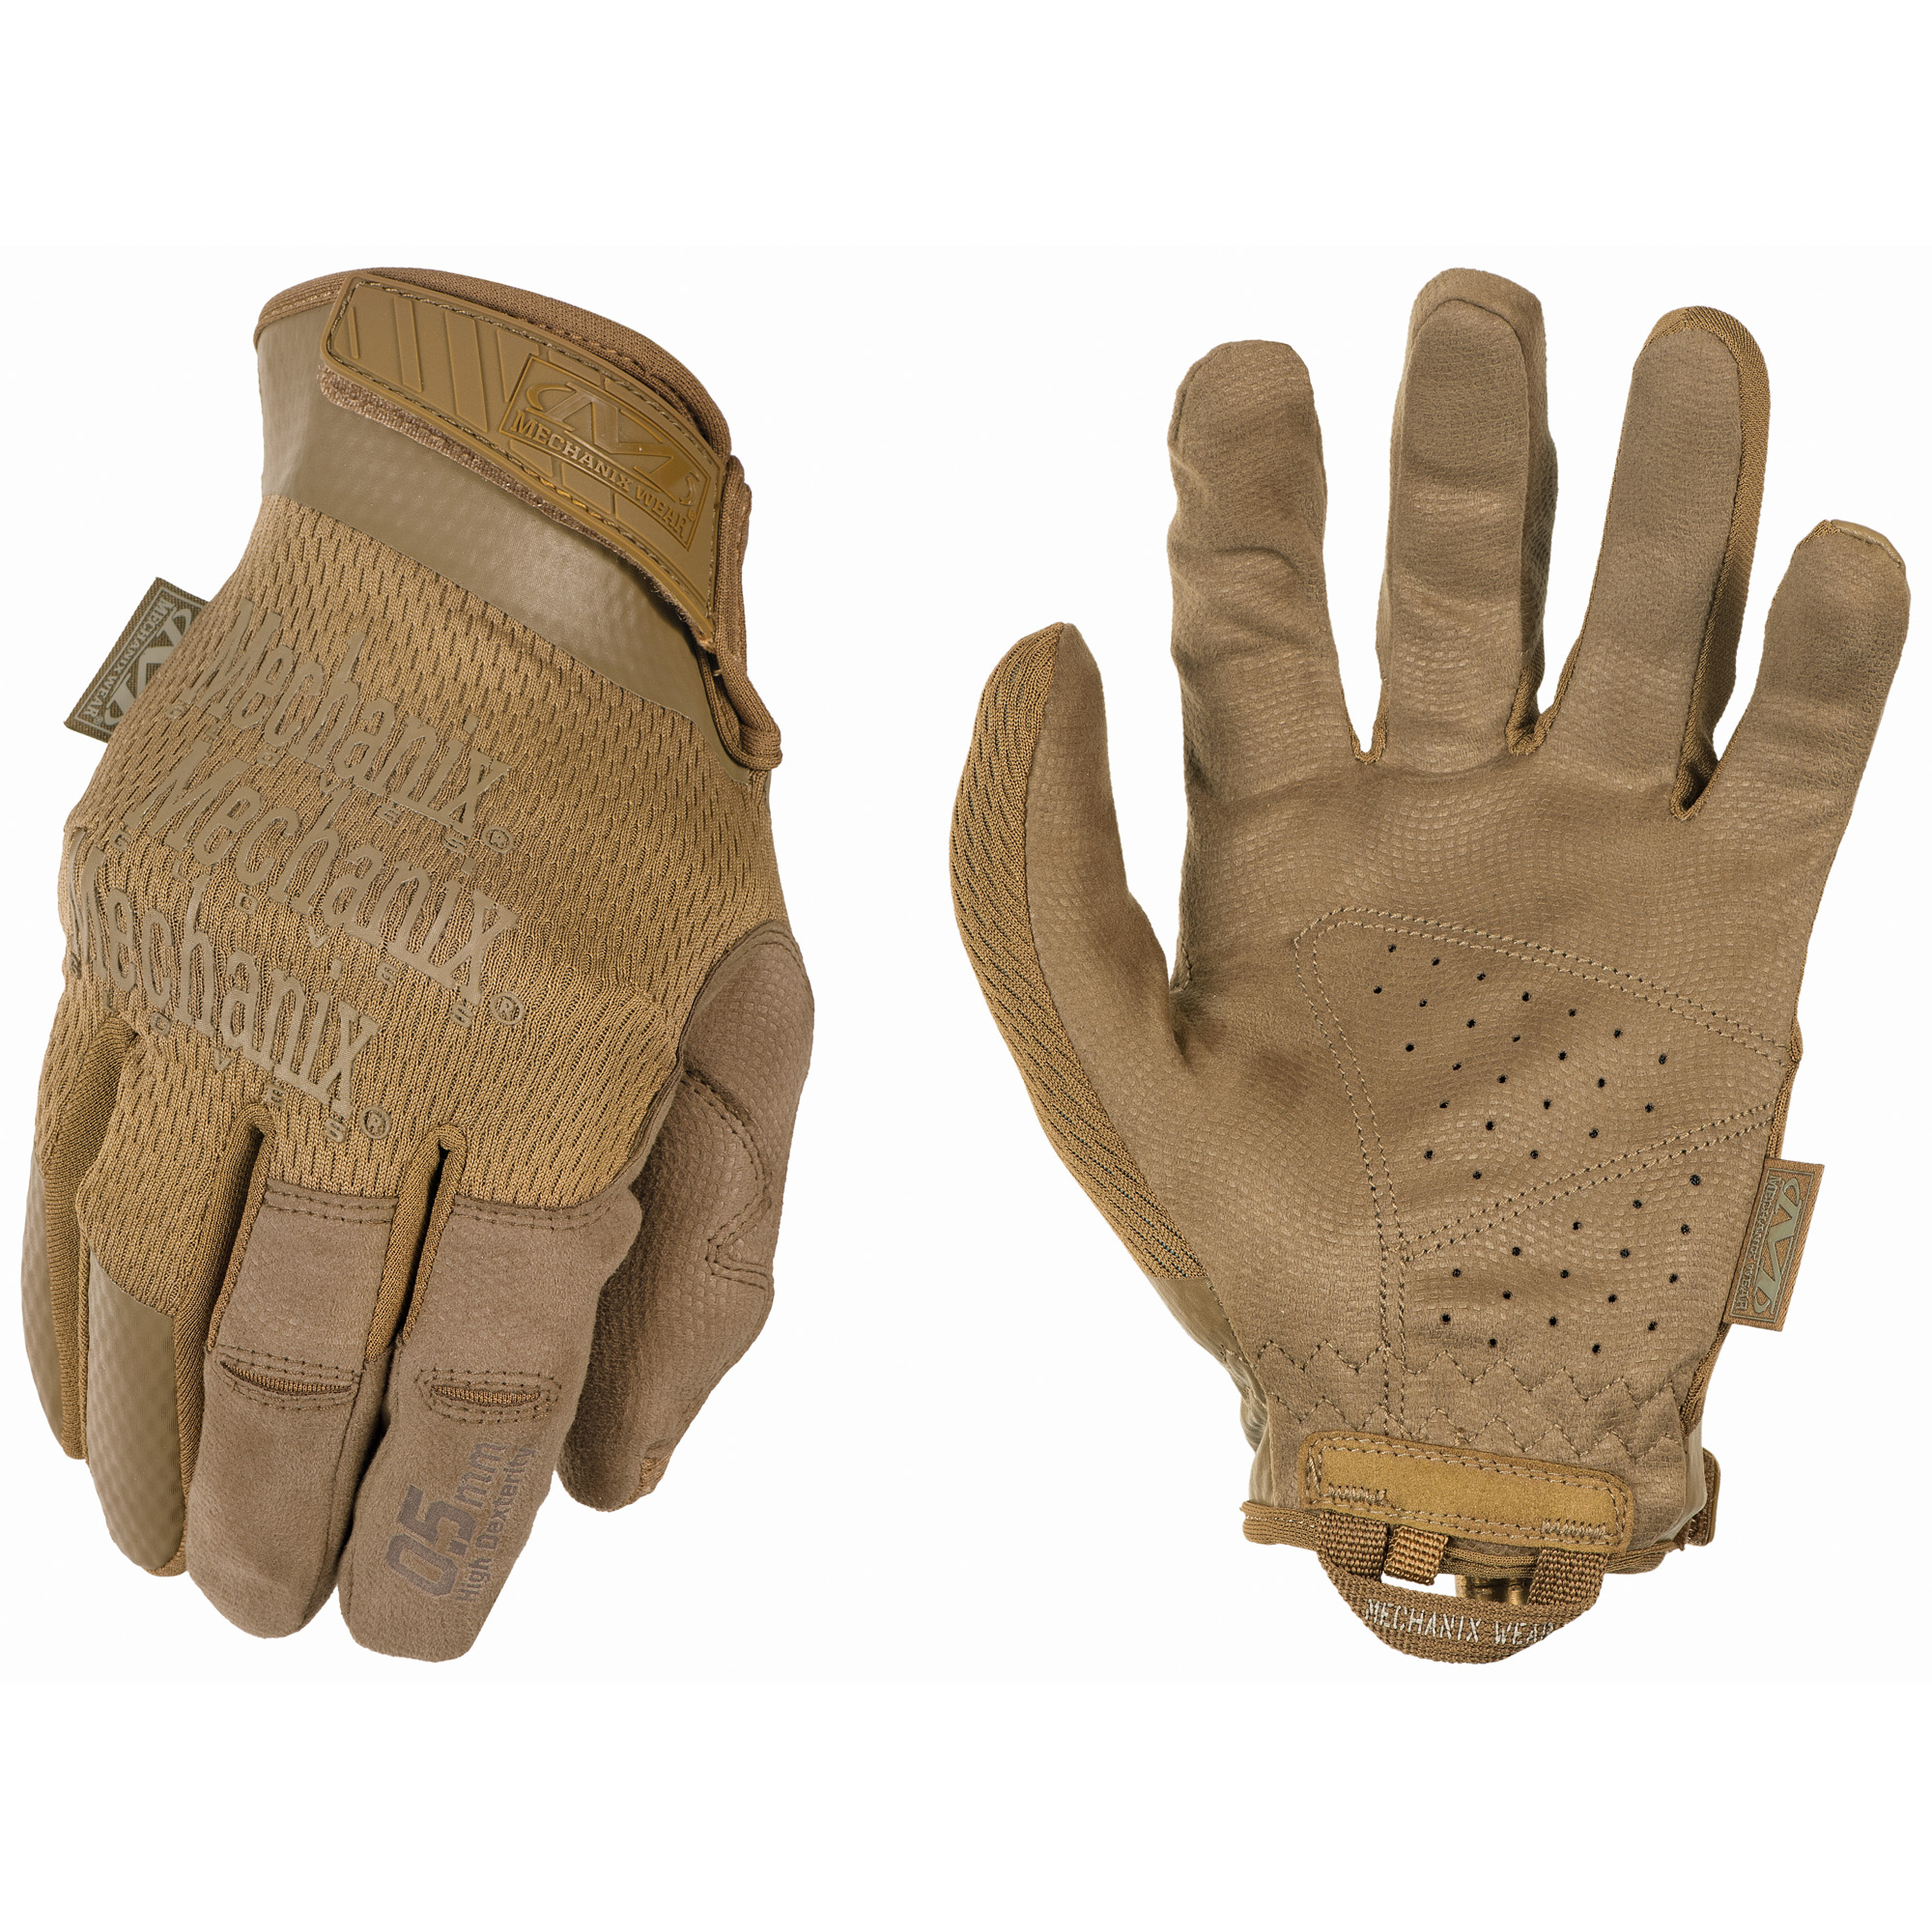 Mechanix Wear Spl 0.5mm Coyote Xl